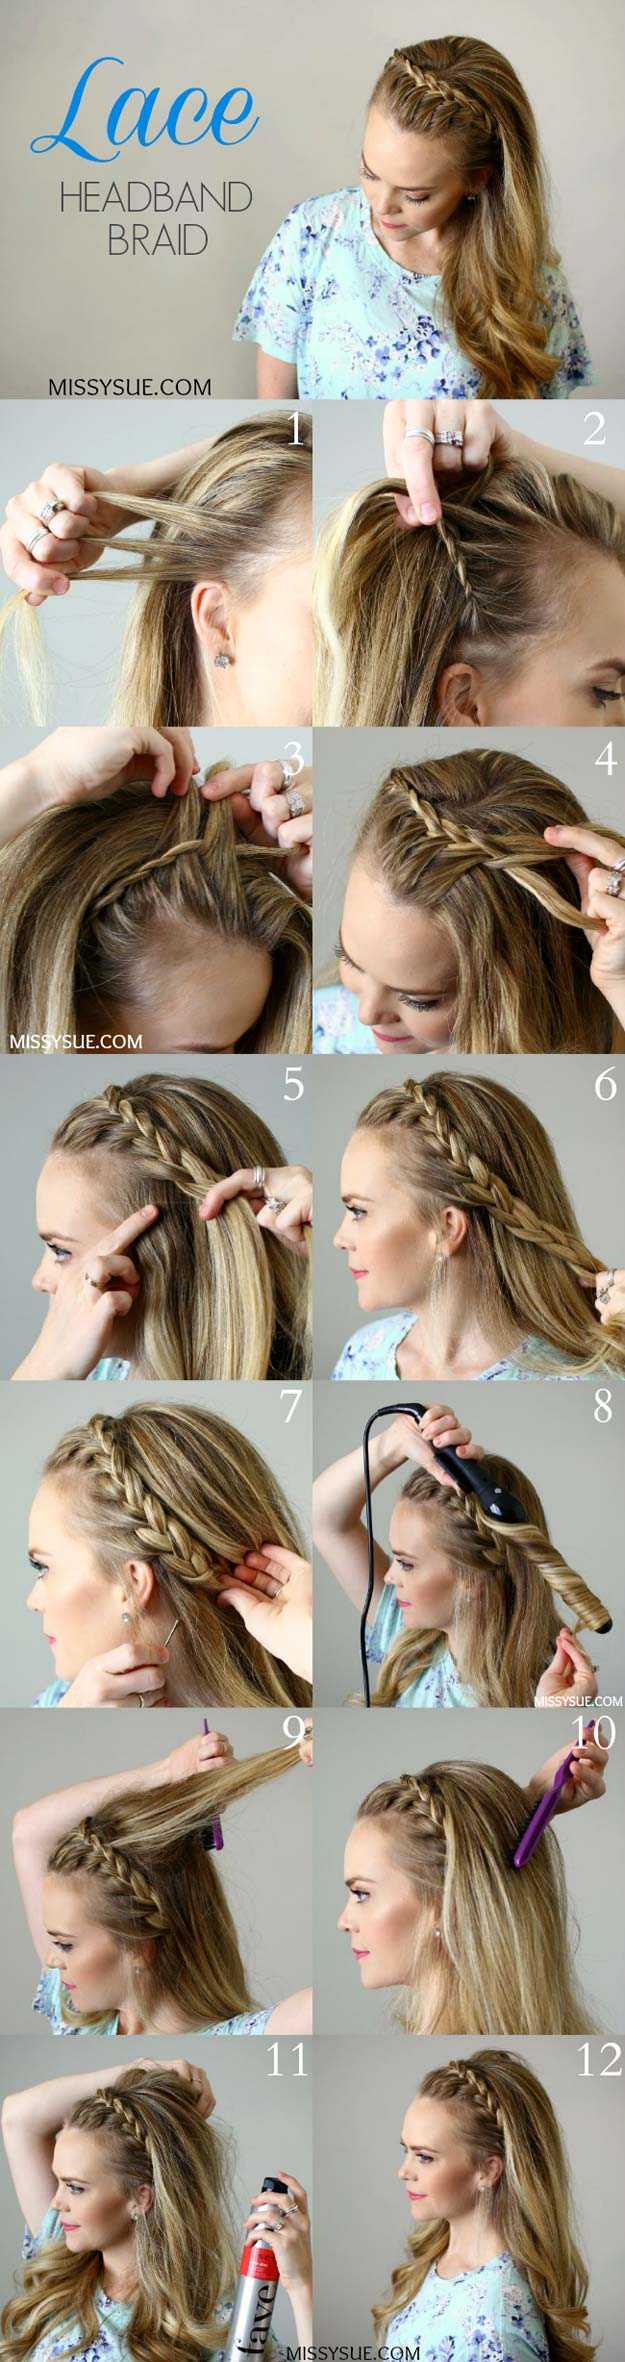 Best Hair Braiding Tutorials - Lace Headband Braid - Easy Step by Step Tutorials for Braids - How To Braid Fishtail, French Braids, Flower Crown, Side Braids, Cornrows, Updos - Cool Braided Hairstyles for Girls, Teens and Women - School, Day and Evening, Boho, Casual and Formal Looks #hairstyles #braiding #braidingtutorials #diyhair